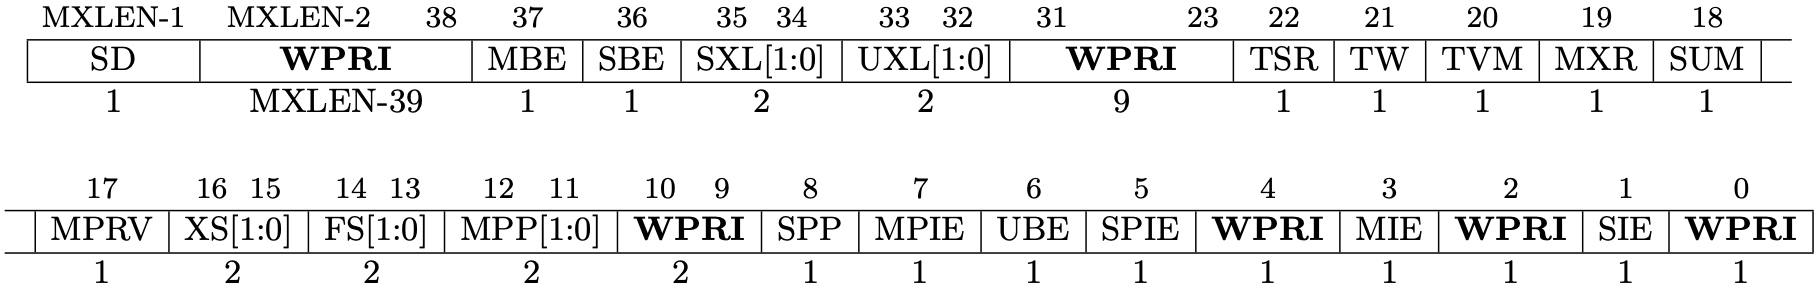 Fig 3.4 mstatus register (Source: Figure 3.6: Machine-mode status register (mstatus) for RV64. in Volume II: Privileged Architecture)